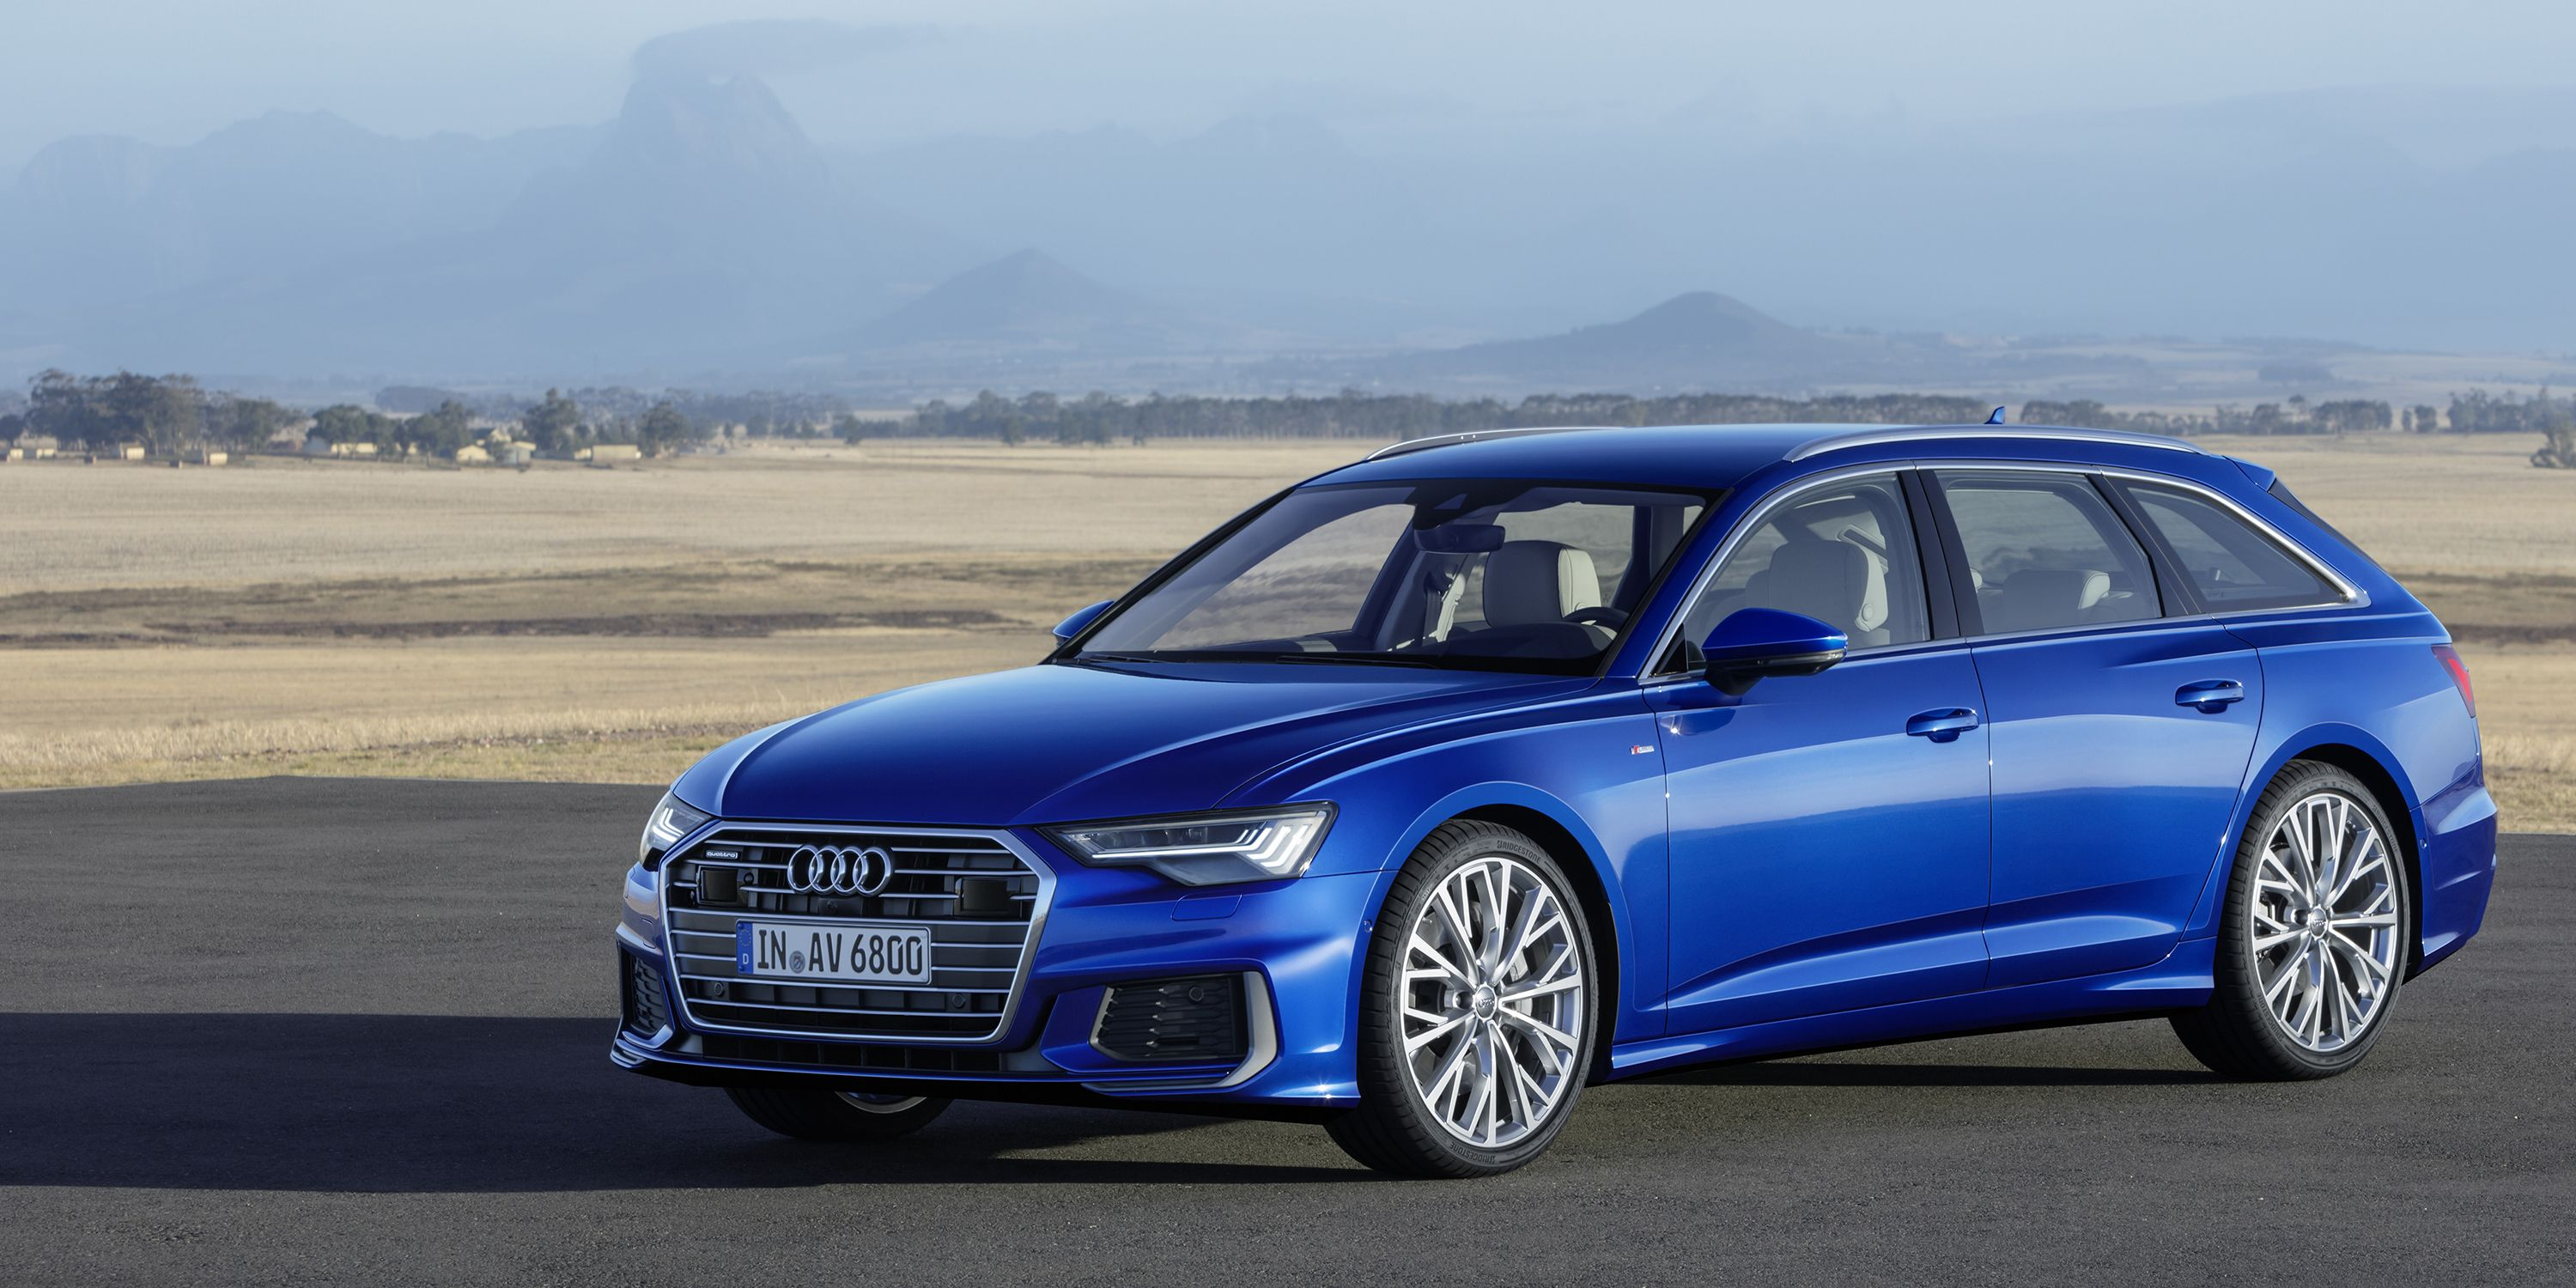 2019 Audi A6 Avant Is Beautiful Even If It Wont Come To